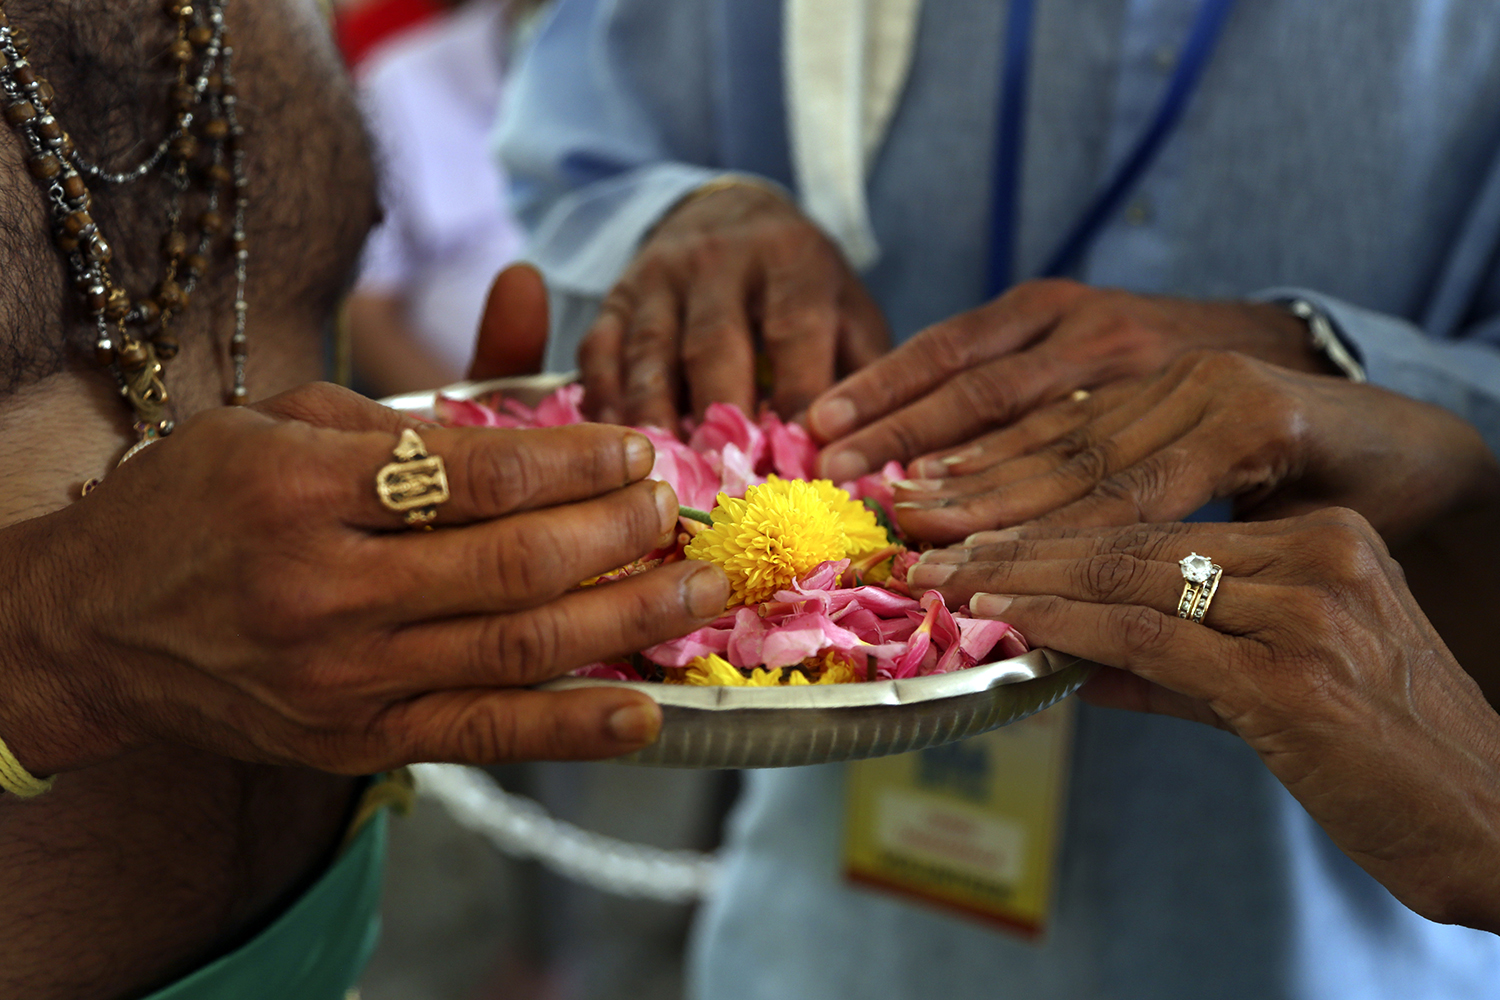 Hindu priest Gopala Dhattar, left, gives blessings to Pandu Tadikamalla, center, and his wife, Rama Tadikamalla, right, as they rest their hands on a bed of flower petals during the Maha Kumbhabhishekam, a five-day rededication ceremony at the Sri Venkateswara Temple in Penn Hills, Pa, Friday, June 25, 2021. Built in the 1970s, the Sri Venkateswara Temple is the oldest major Hindu temple in the country. Maha Kumbhabhishekams occur about every 12 years and involve ceremonies to reenergize the temple and its deities. (AP Photo/Jessie Wardarski)